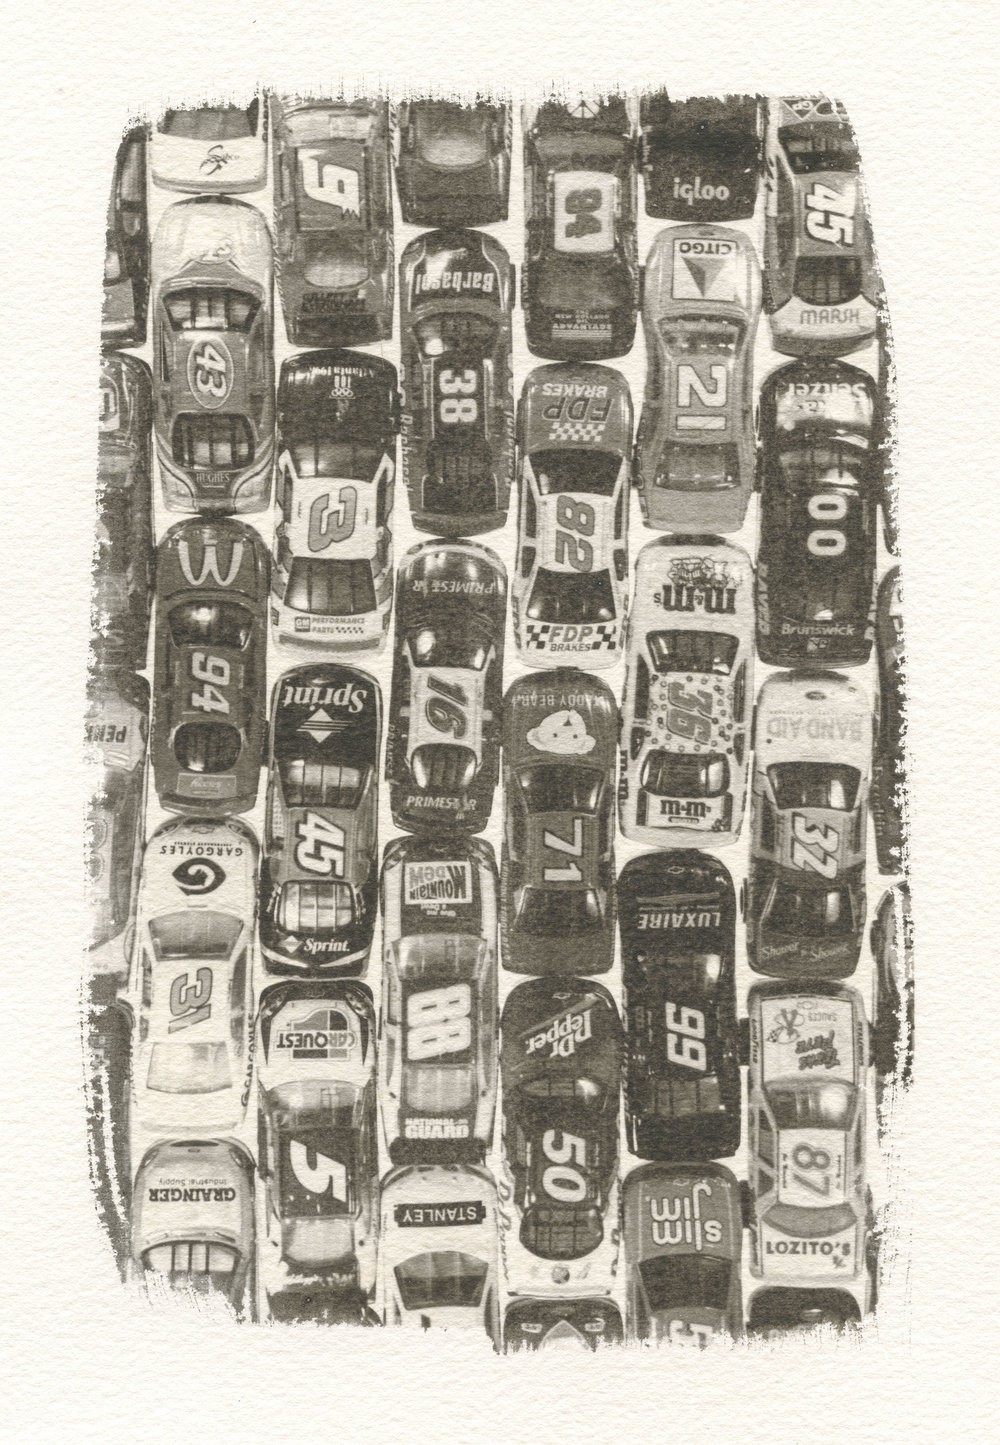 """Matchbox Cars,""  Silver Gelatin Emulsion on Arches Watercolor Paper, Toned in Sepia.  at Penny Cluse Café, February 2019"